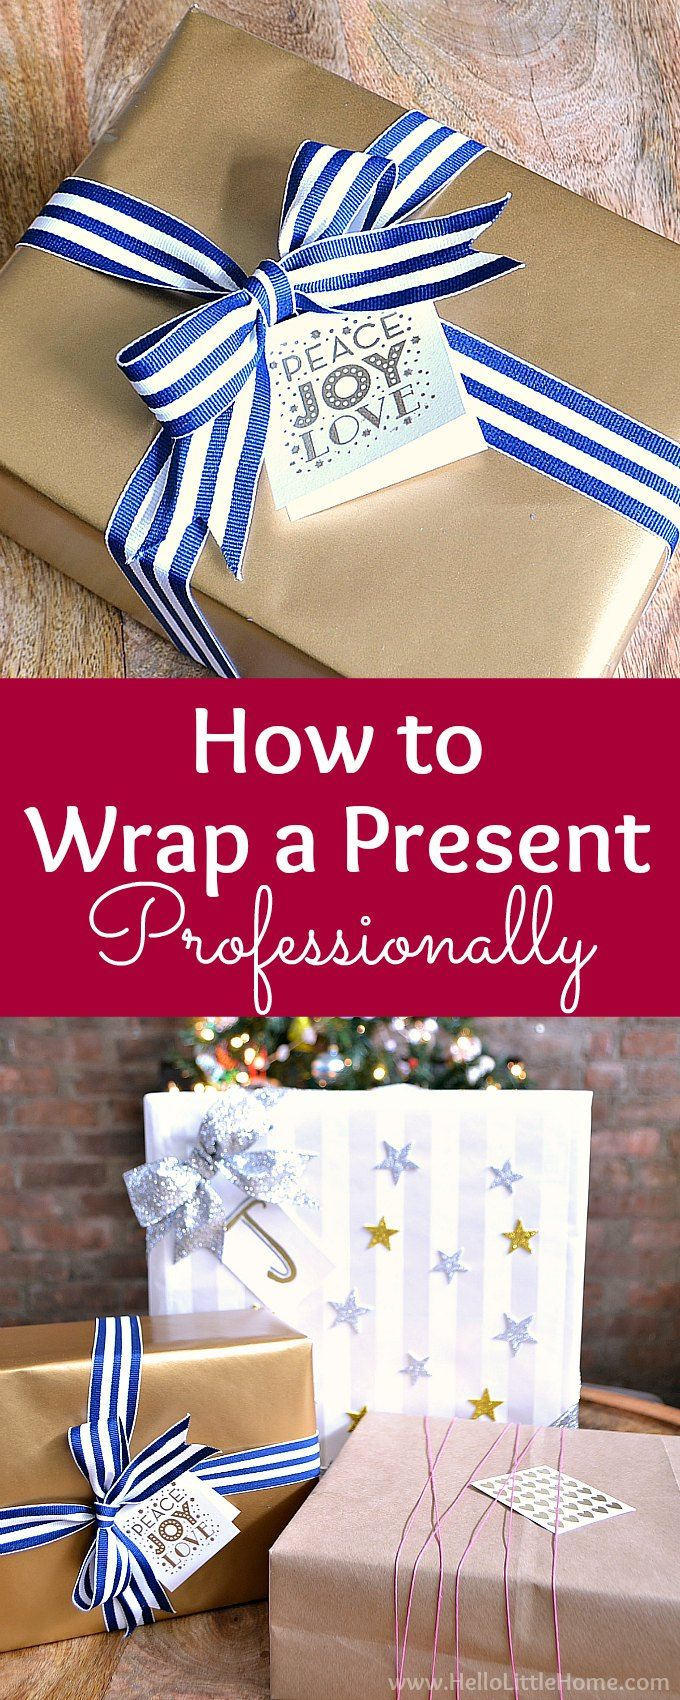 How to Wrap a Present Professionally ... with video! Wrap gifts like a pro with this easy tutorial that shows you how to wrap a present perfectly step by step. These easy gift wrapping tips work for any size box. Follow this simple present wrapping tutorial for beautifully wrapped presents every time. The best way to wrap a present! Plus, tips for wrapping oddly shaped gifts. | Hello Little Home #giftwrapping #giftwrap #giftwrappingideas #wrapping #wrappingideas #wrappingpresents